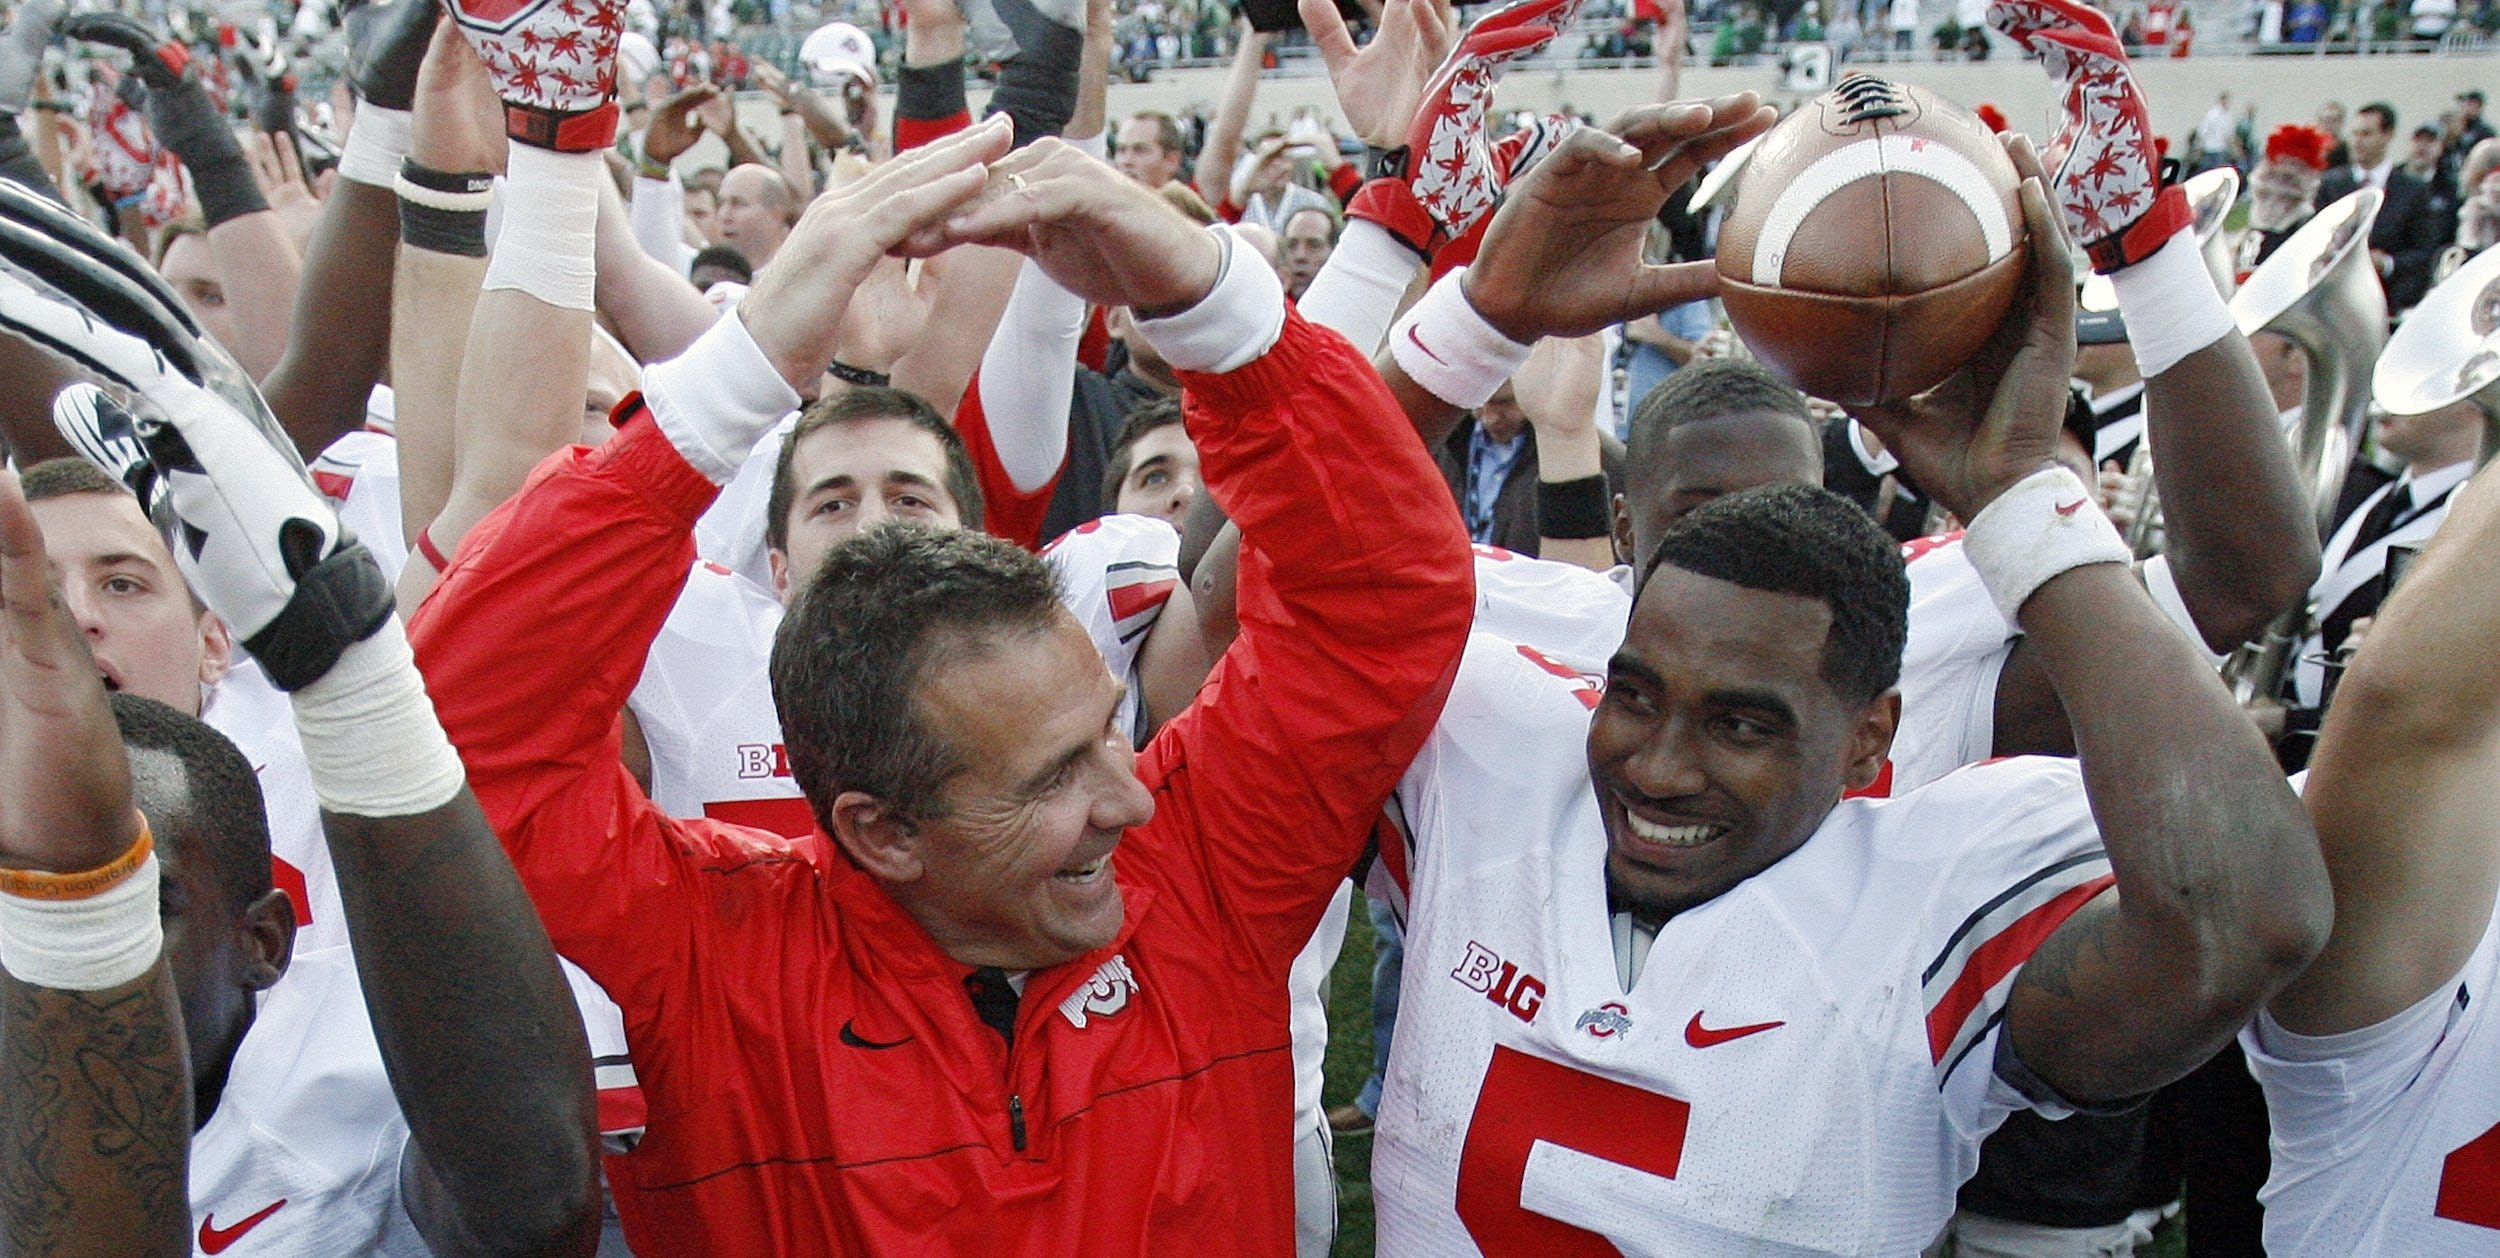 Urban Meyer came to love star quarterback Braxton Miller (5) and the rest of the 2012 Buckeyes, and to this day does not understand why they were punished for NCAA violations committed by predecessors.